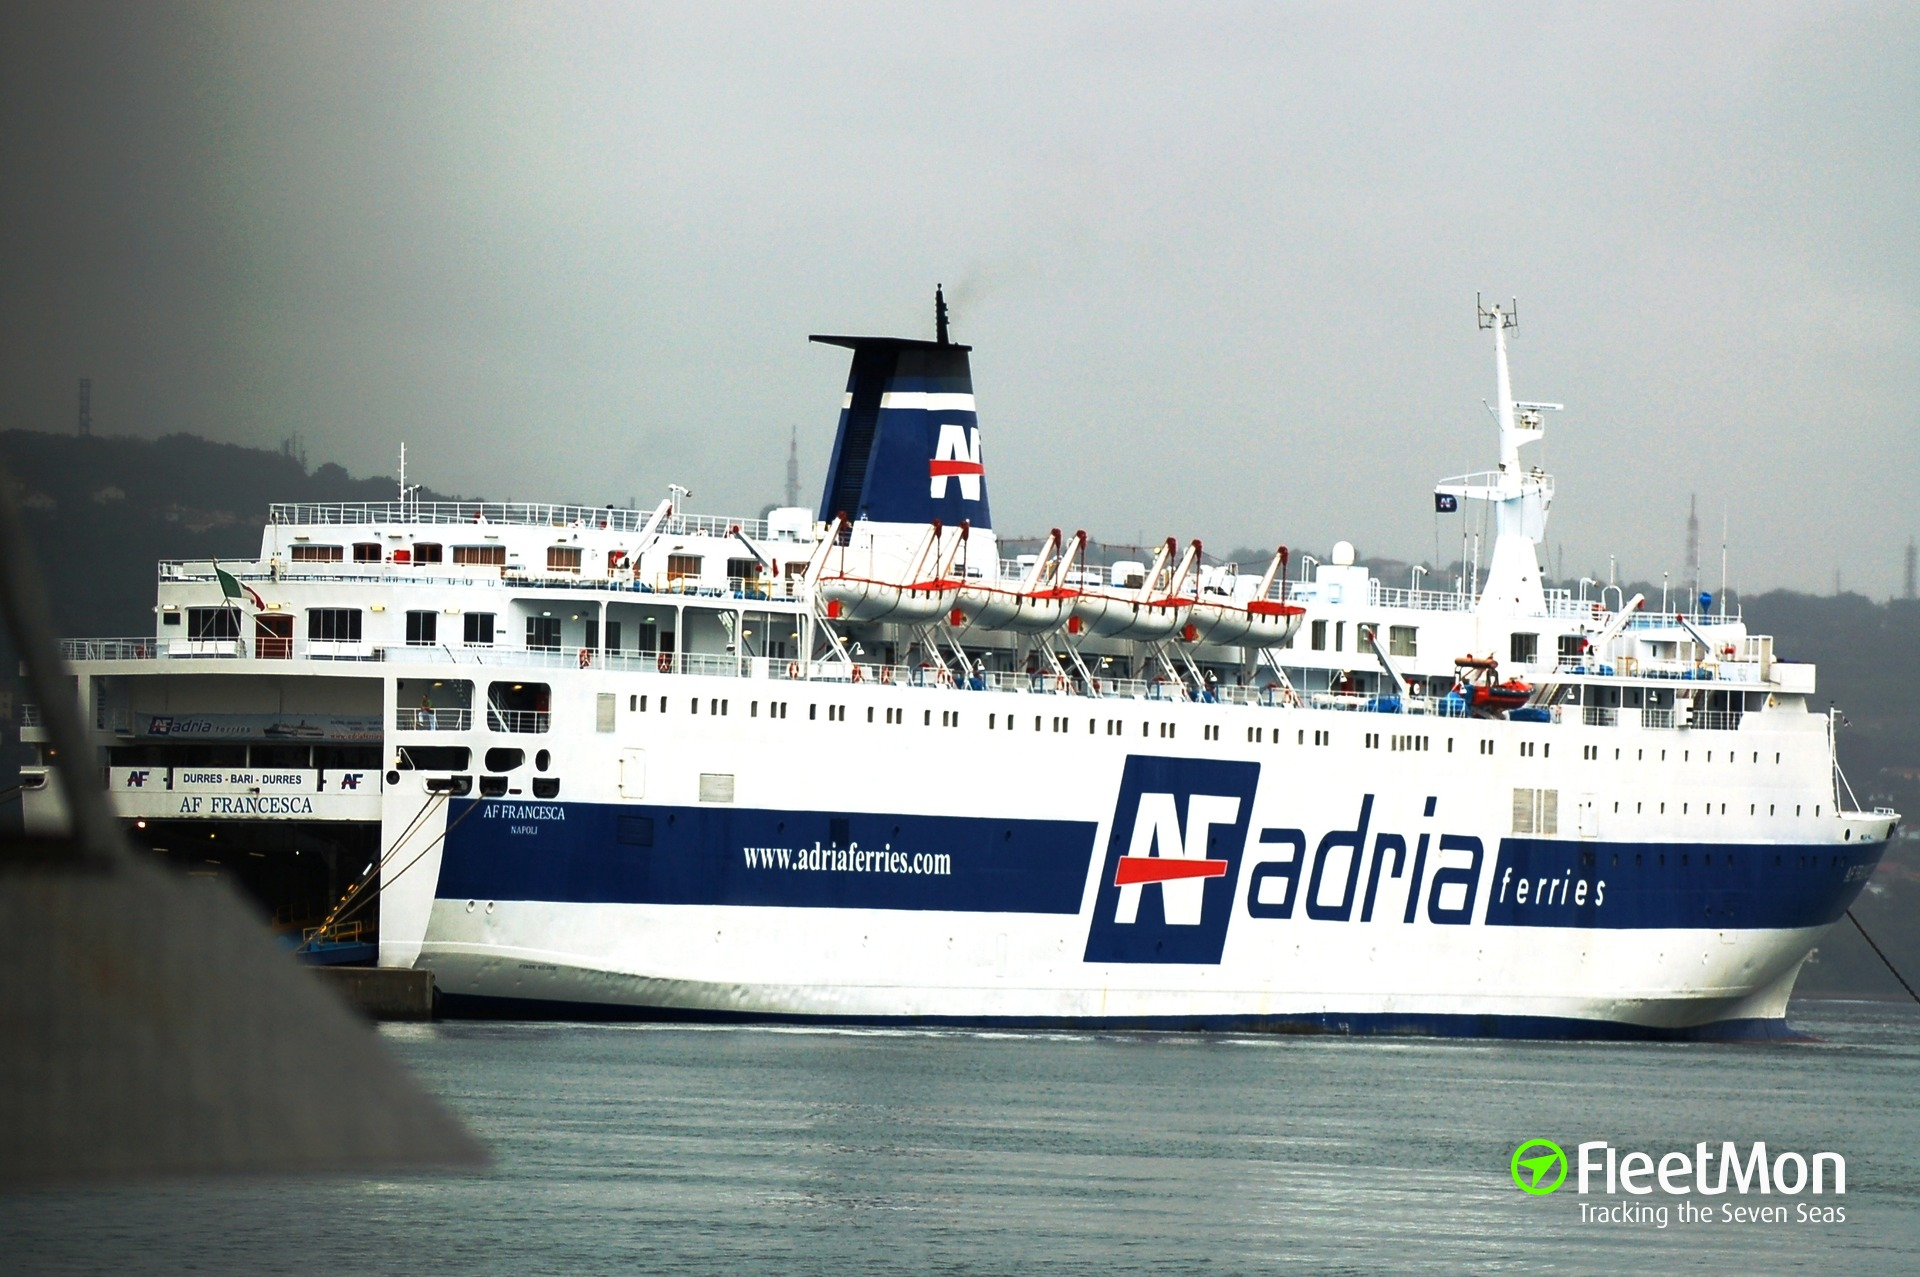 Fire in engine room of Italian ferry, Adriatic sea